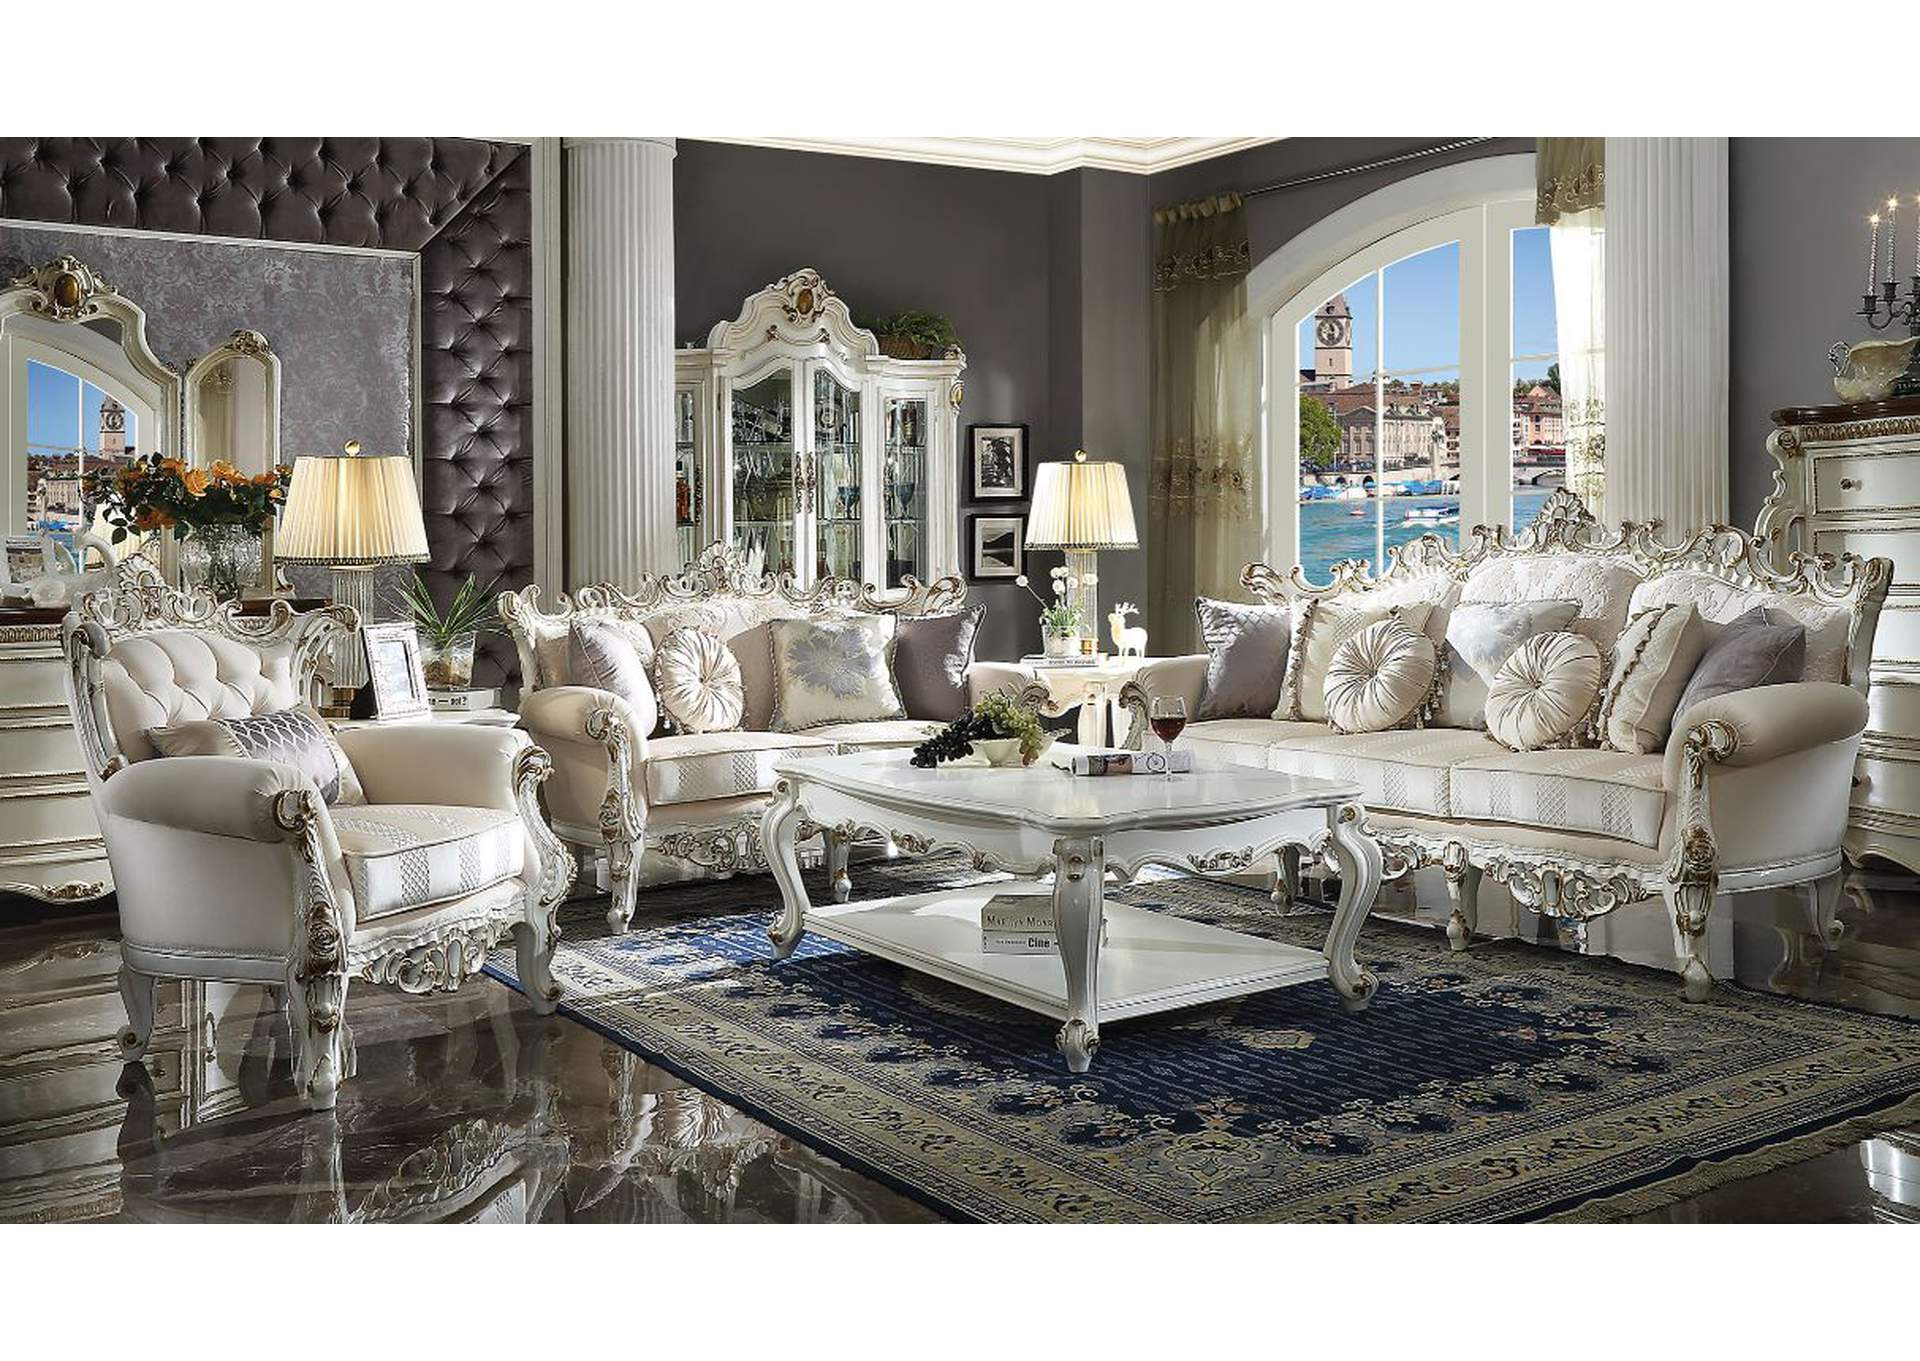 Picardy II Fabric & Antique Pearl Sofa,Acme